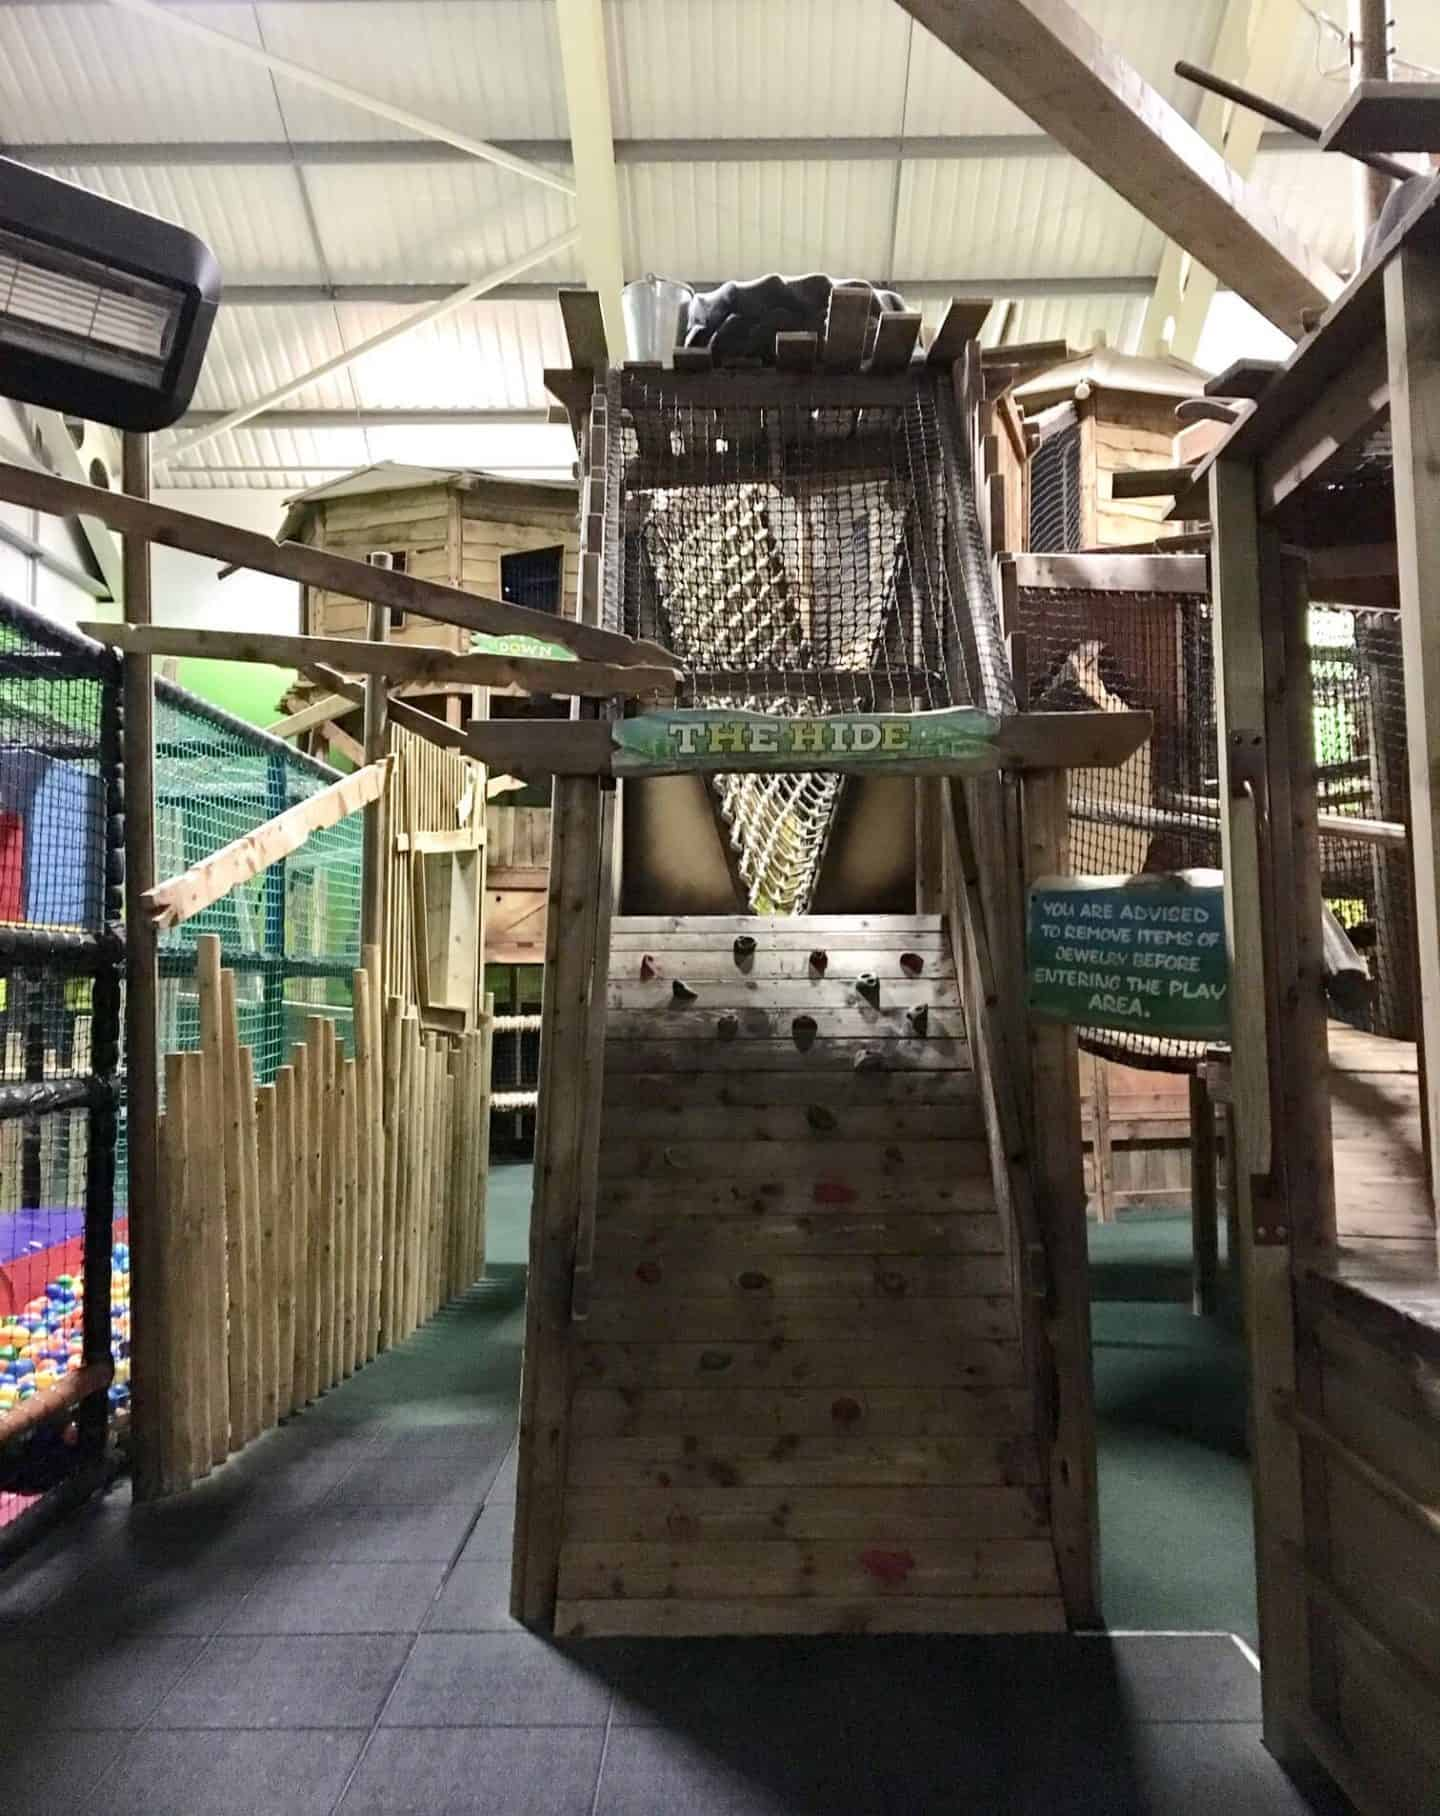 Our Family Holiday at Bluestone Wales - Part 2